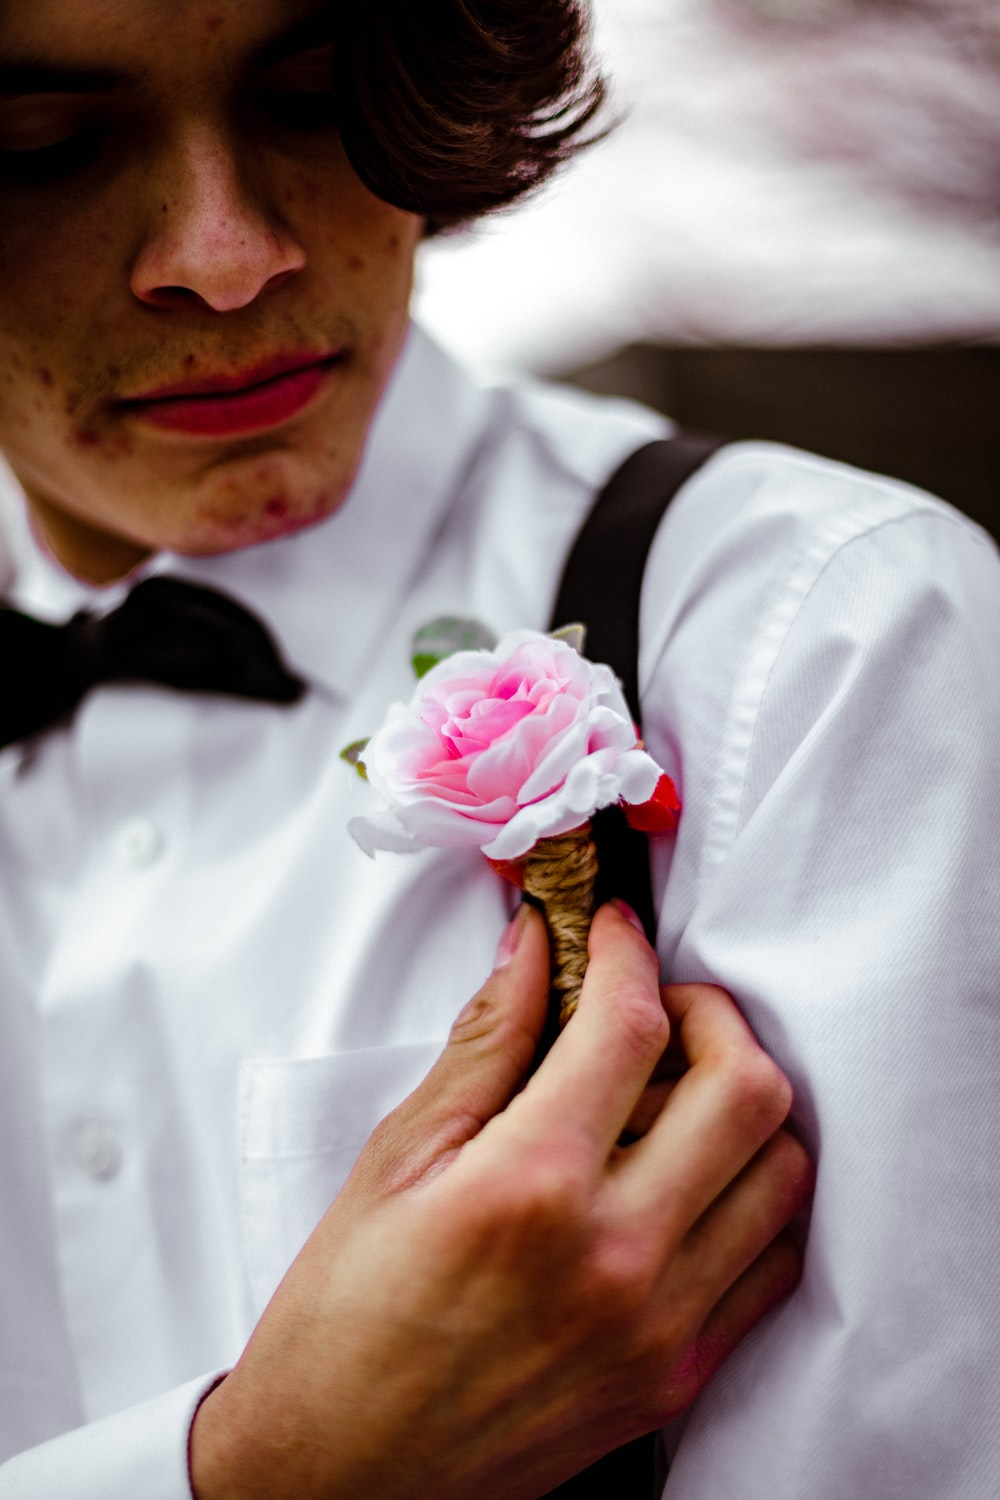 man in white dress shirt with black bowtie holding pink rose